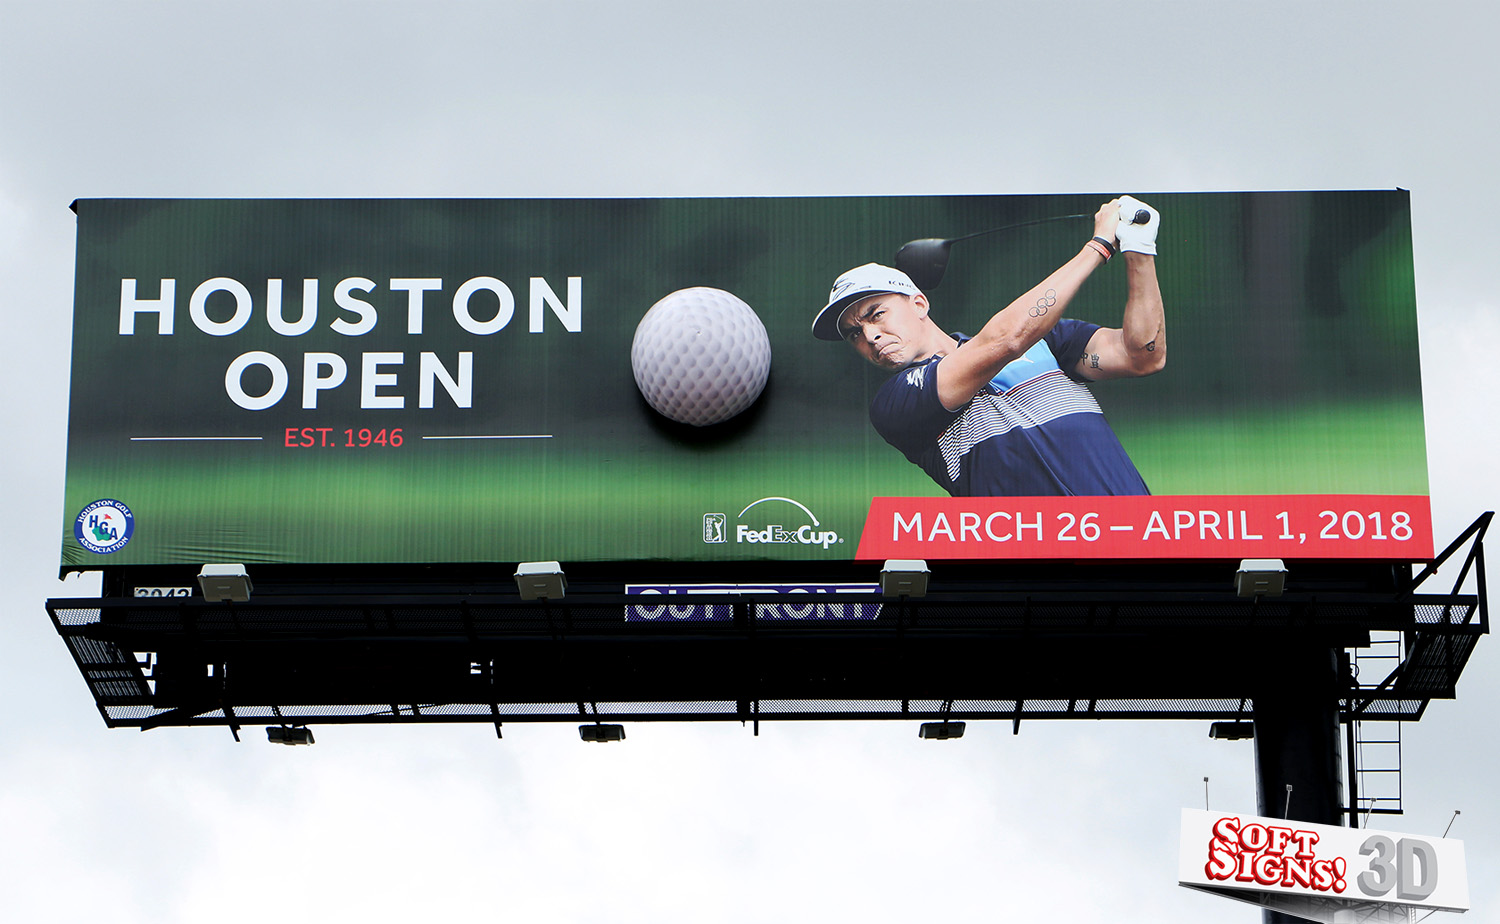 Houston Open Golf Ball by Soft Signs 3D